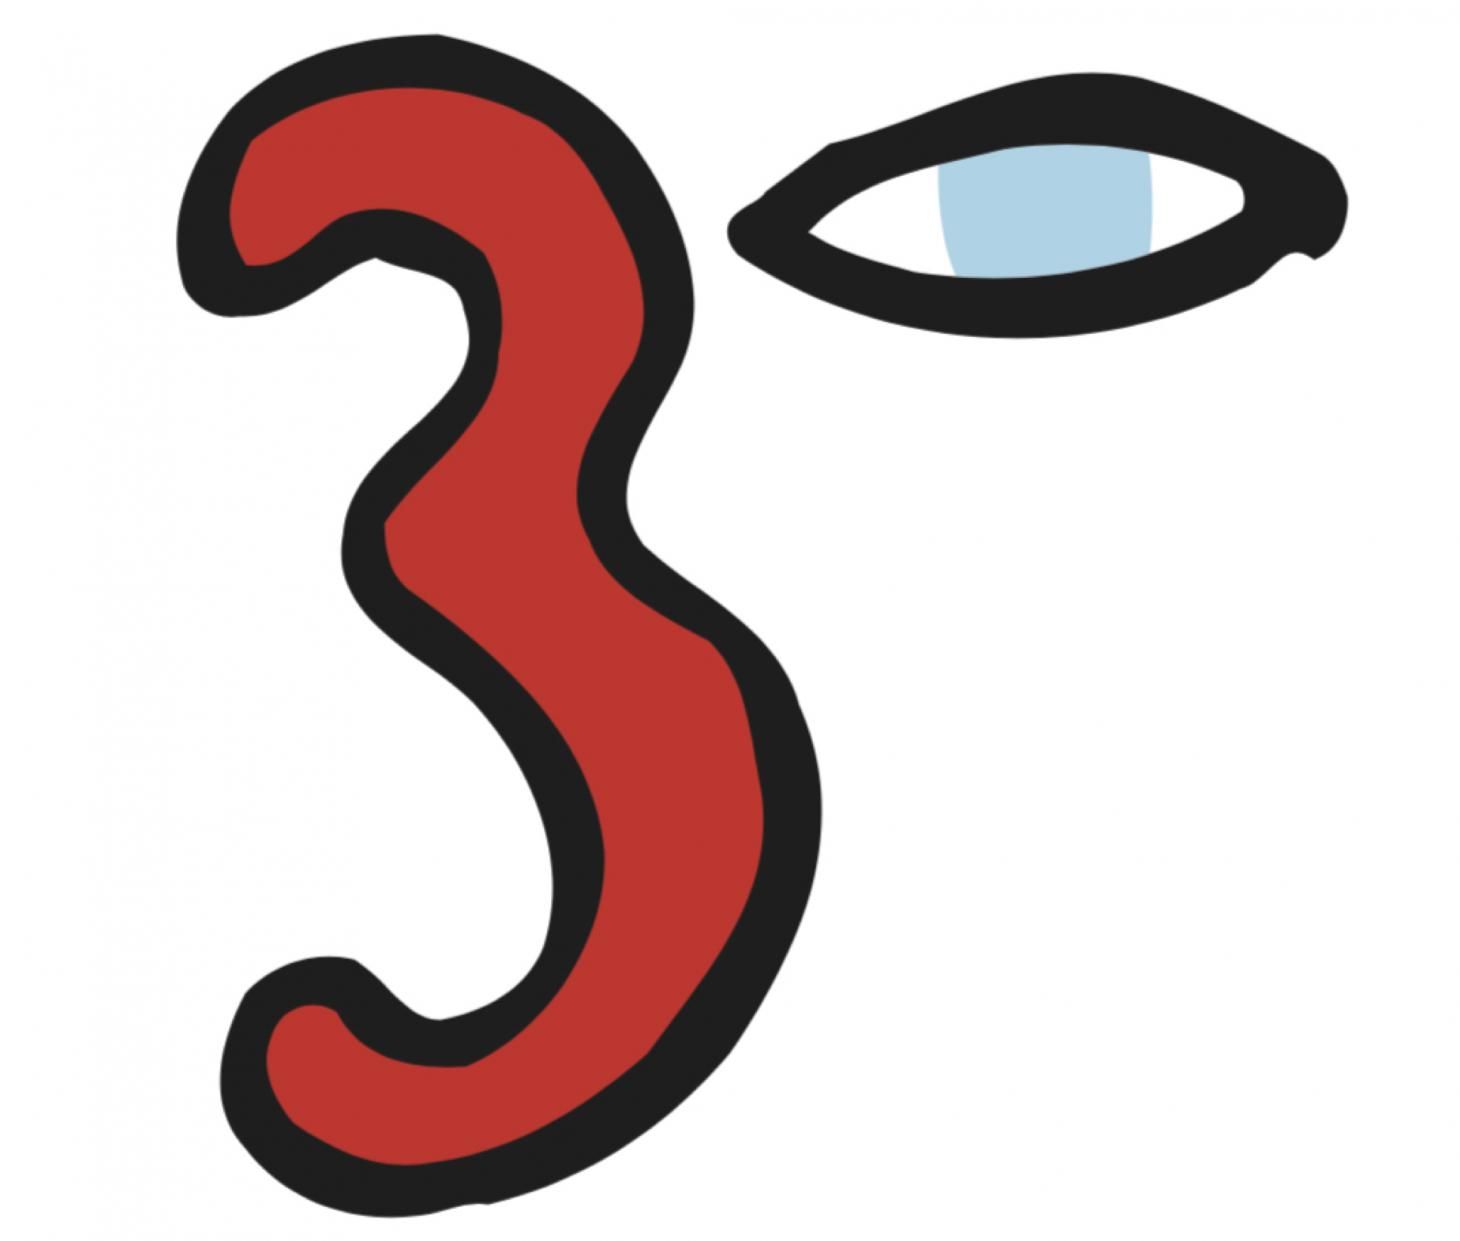 3i logo designed by Michael Wolff